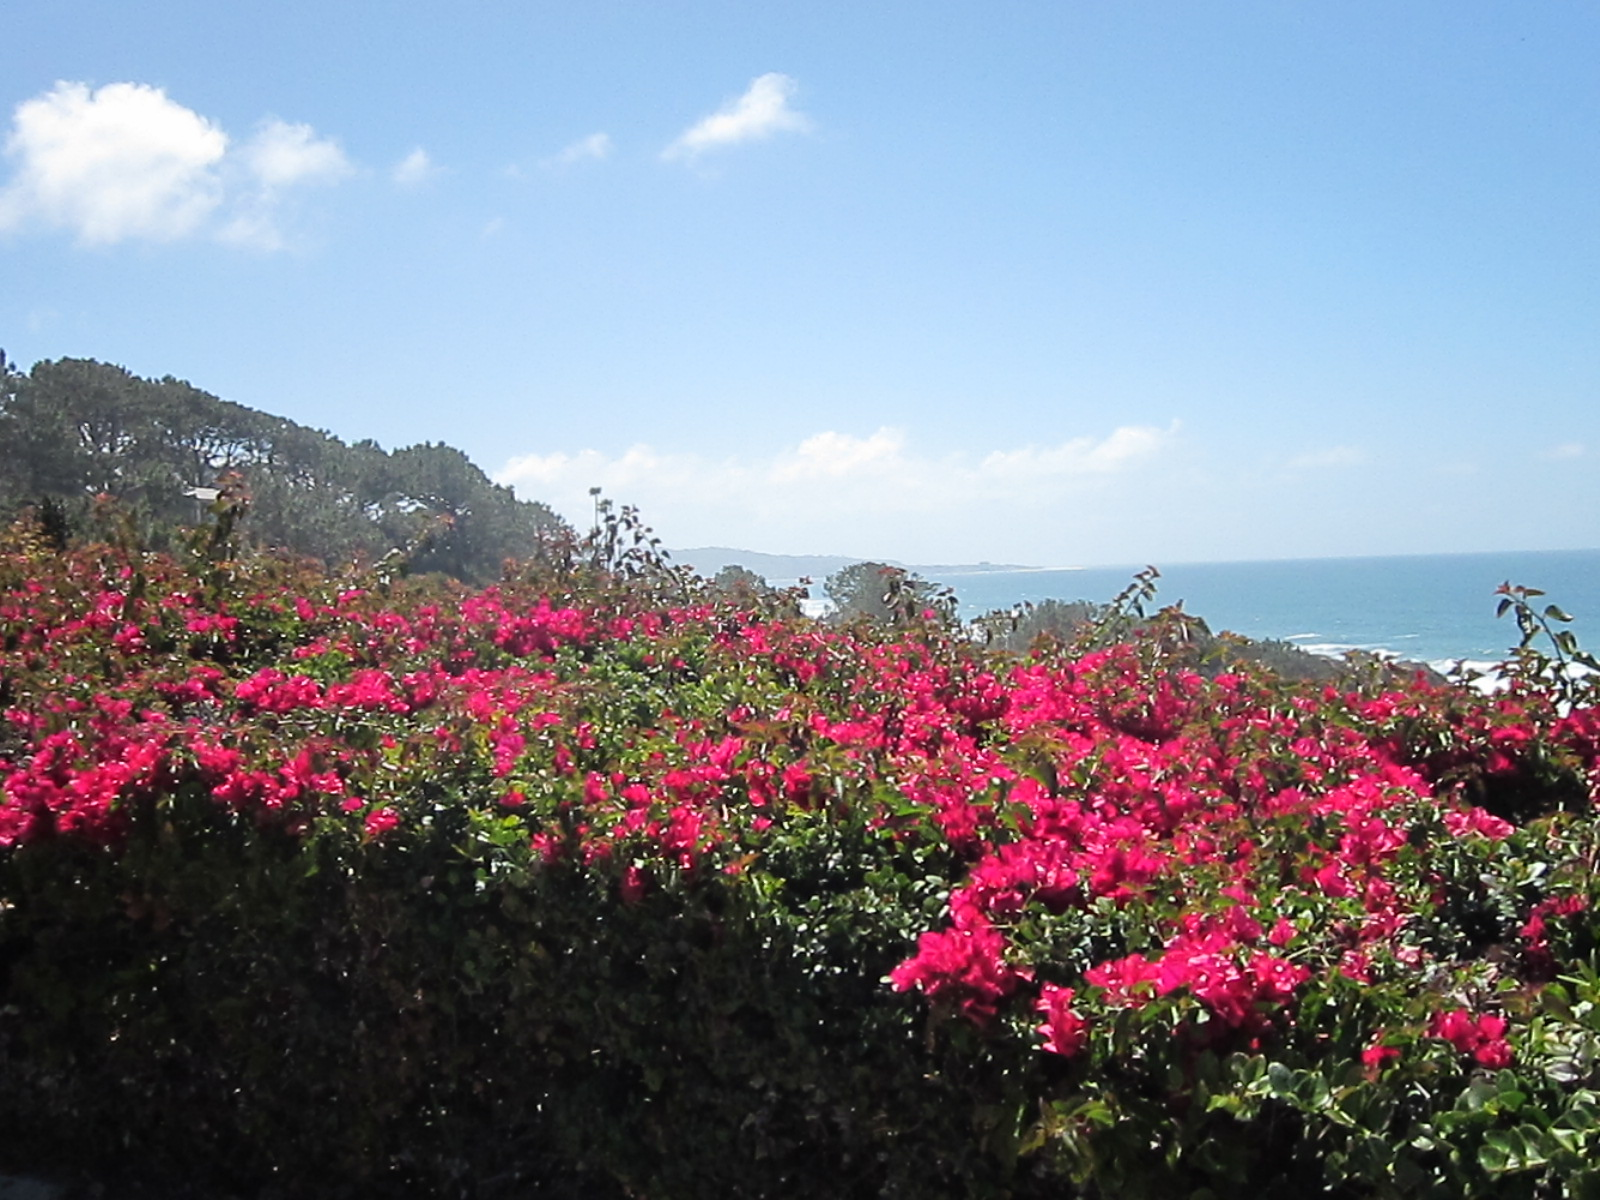 View from the end of the bike trail in Del Mar